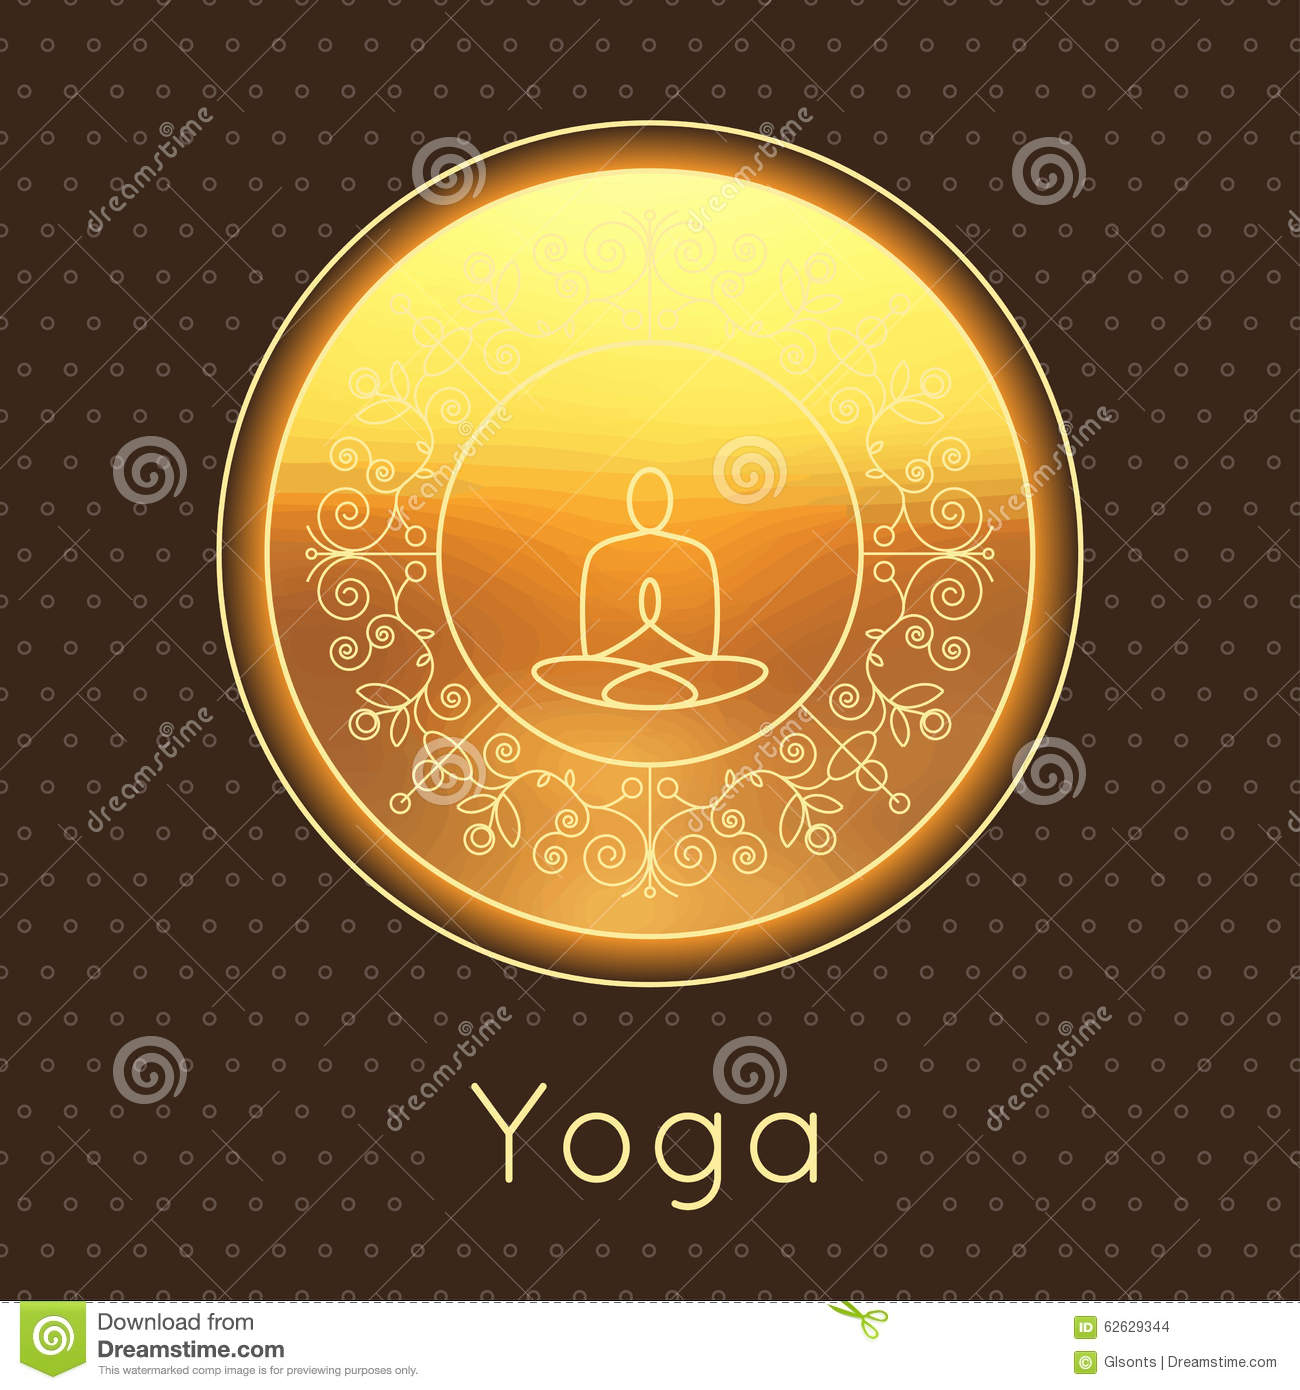 Poster design yoga - Vector Yoga Illustration Yoga Poster With Floral Ornament And Yogi Silhouette Identity Design For